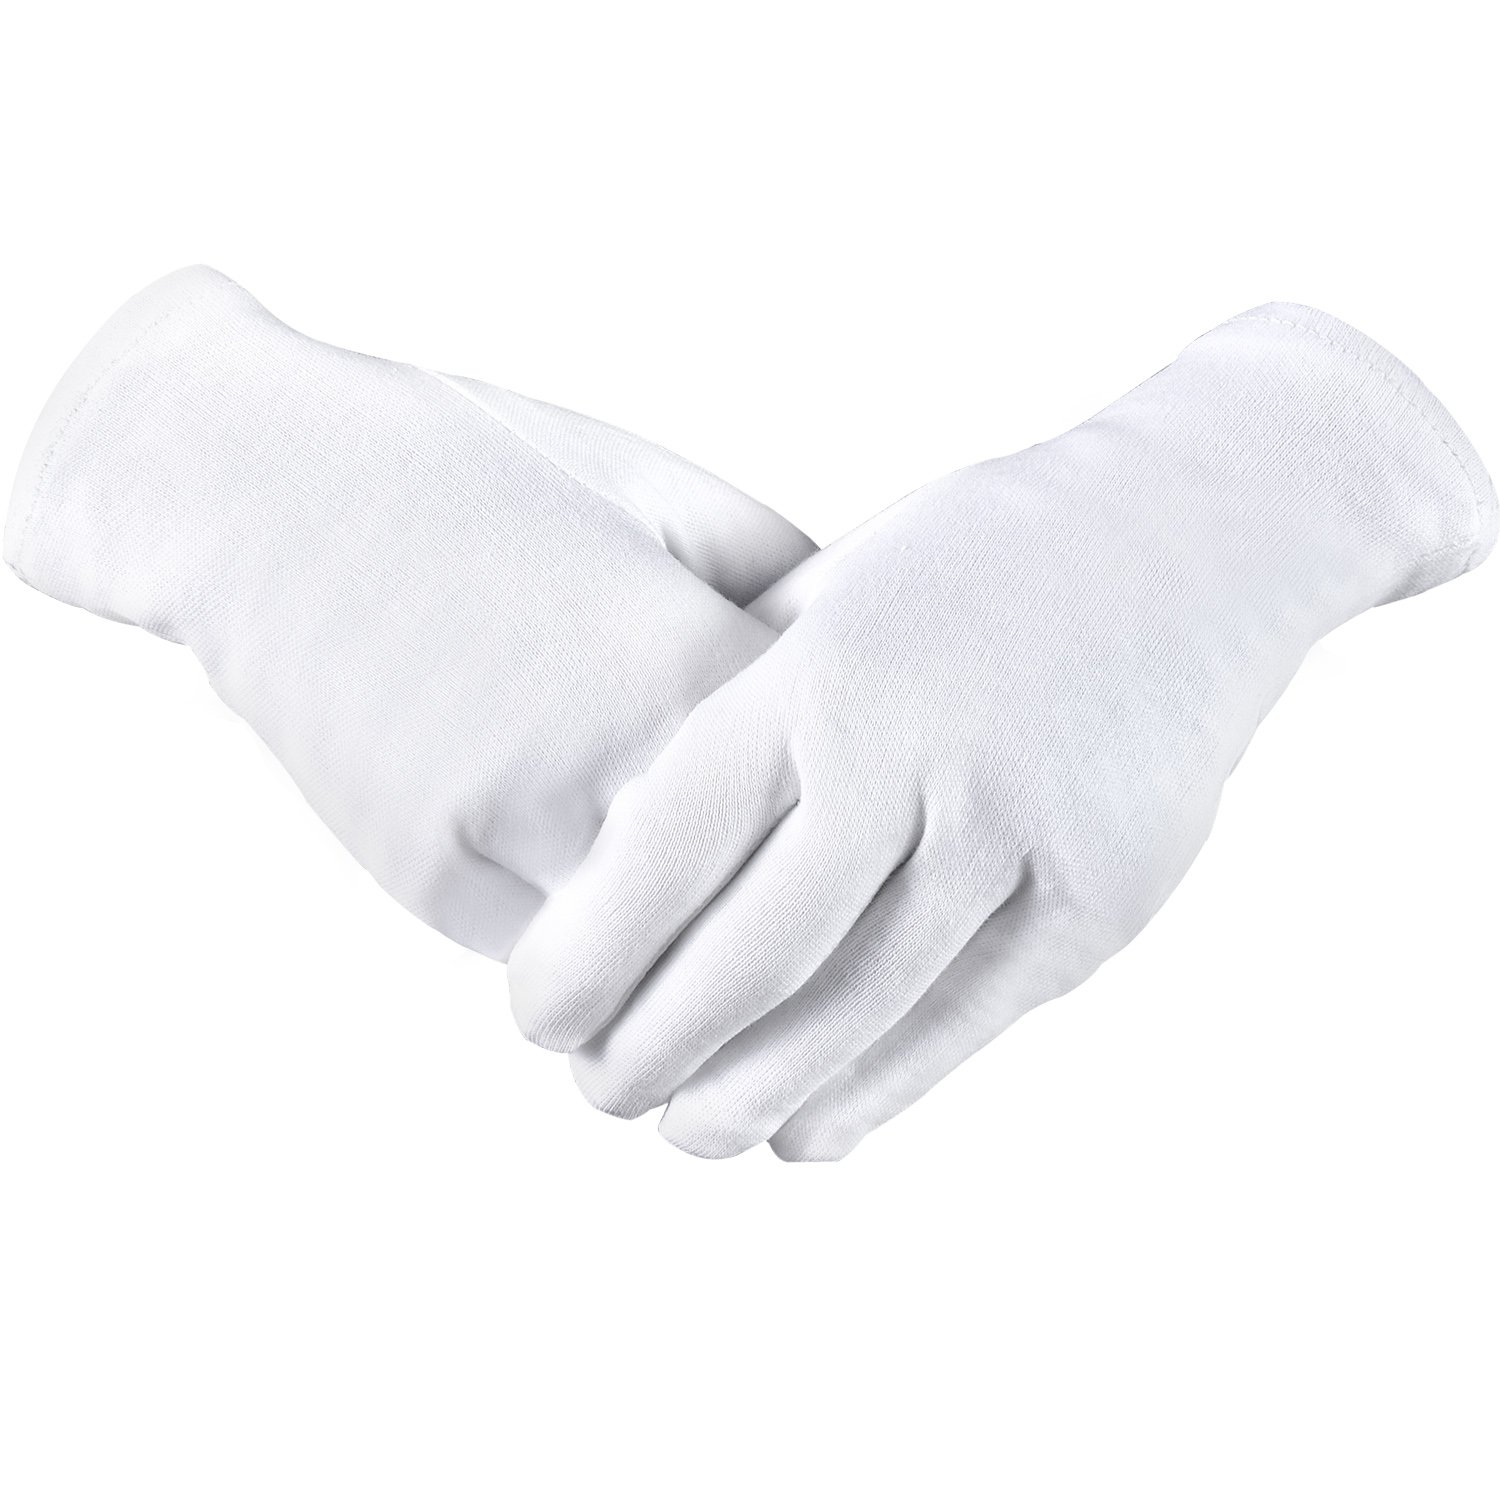 Hicarer 3 Pairs White Cotton Gloves Cosmetic Gloves for Dry Hand Moisturizing Jewelry Inspection Spa (L Size)